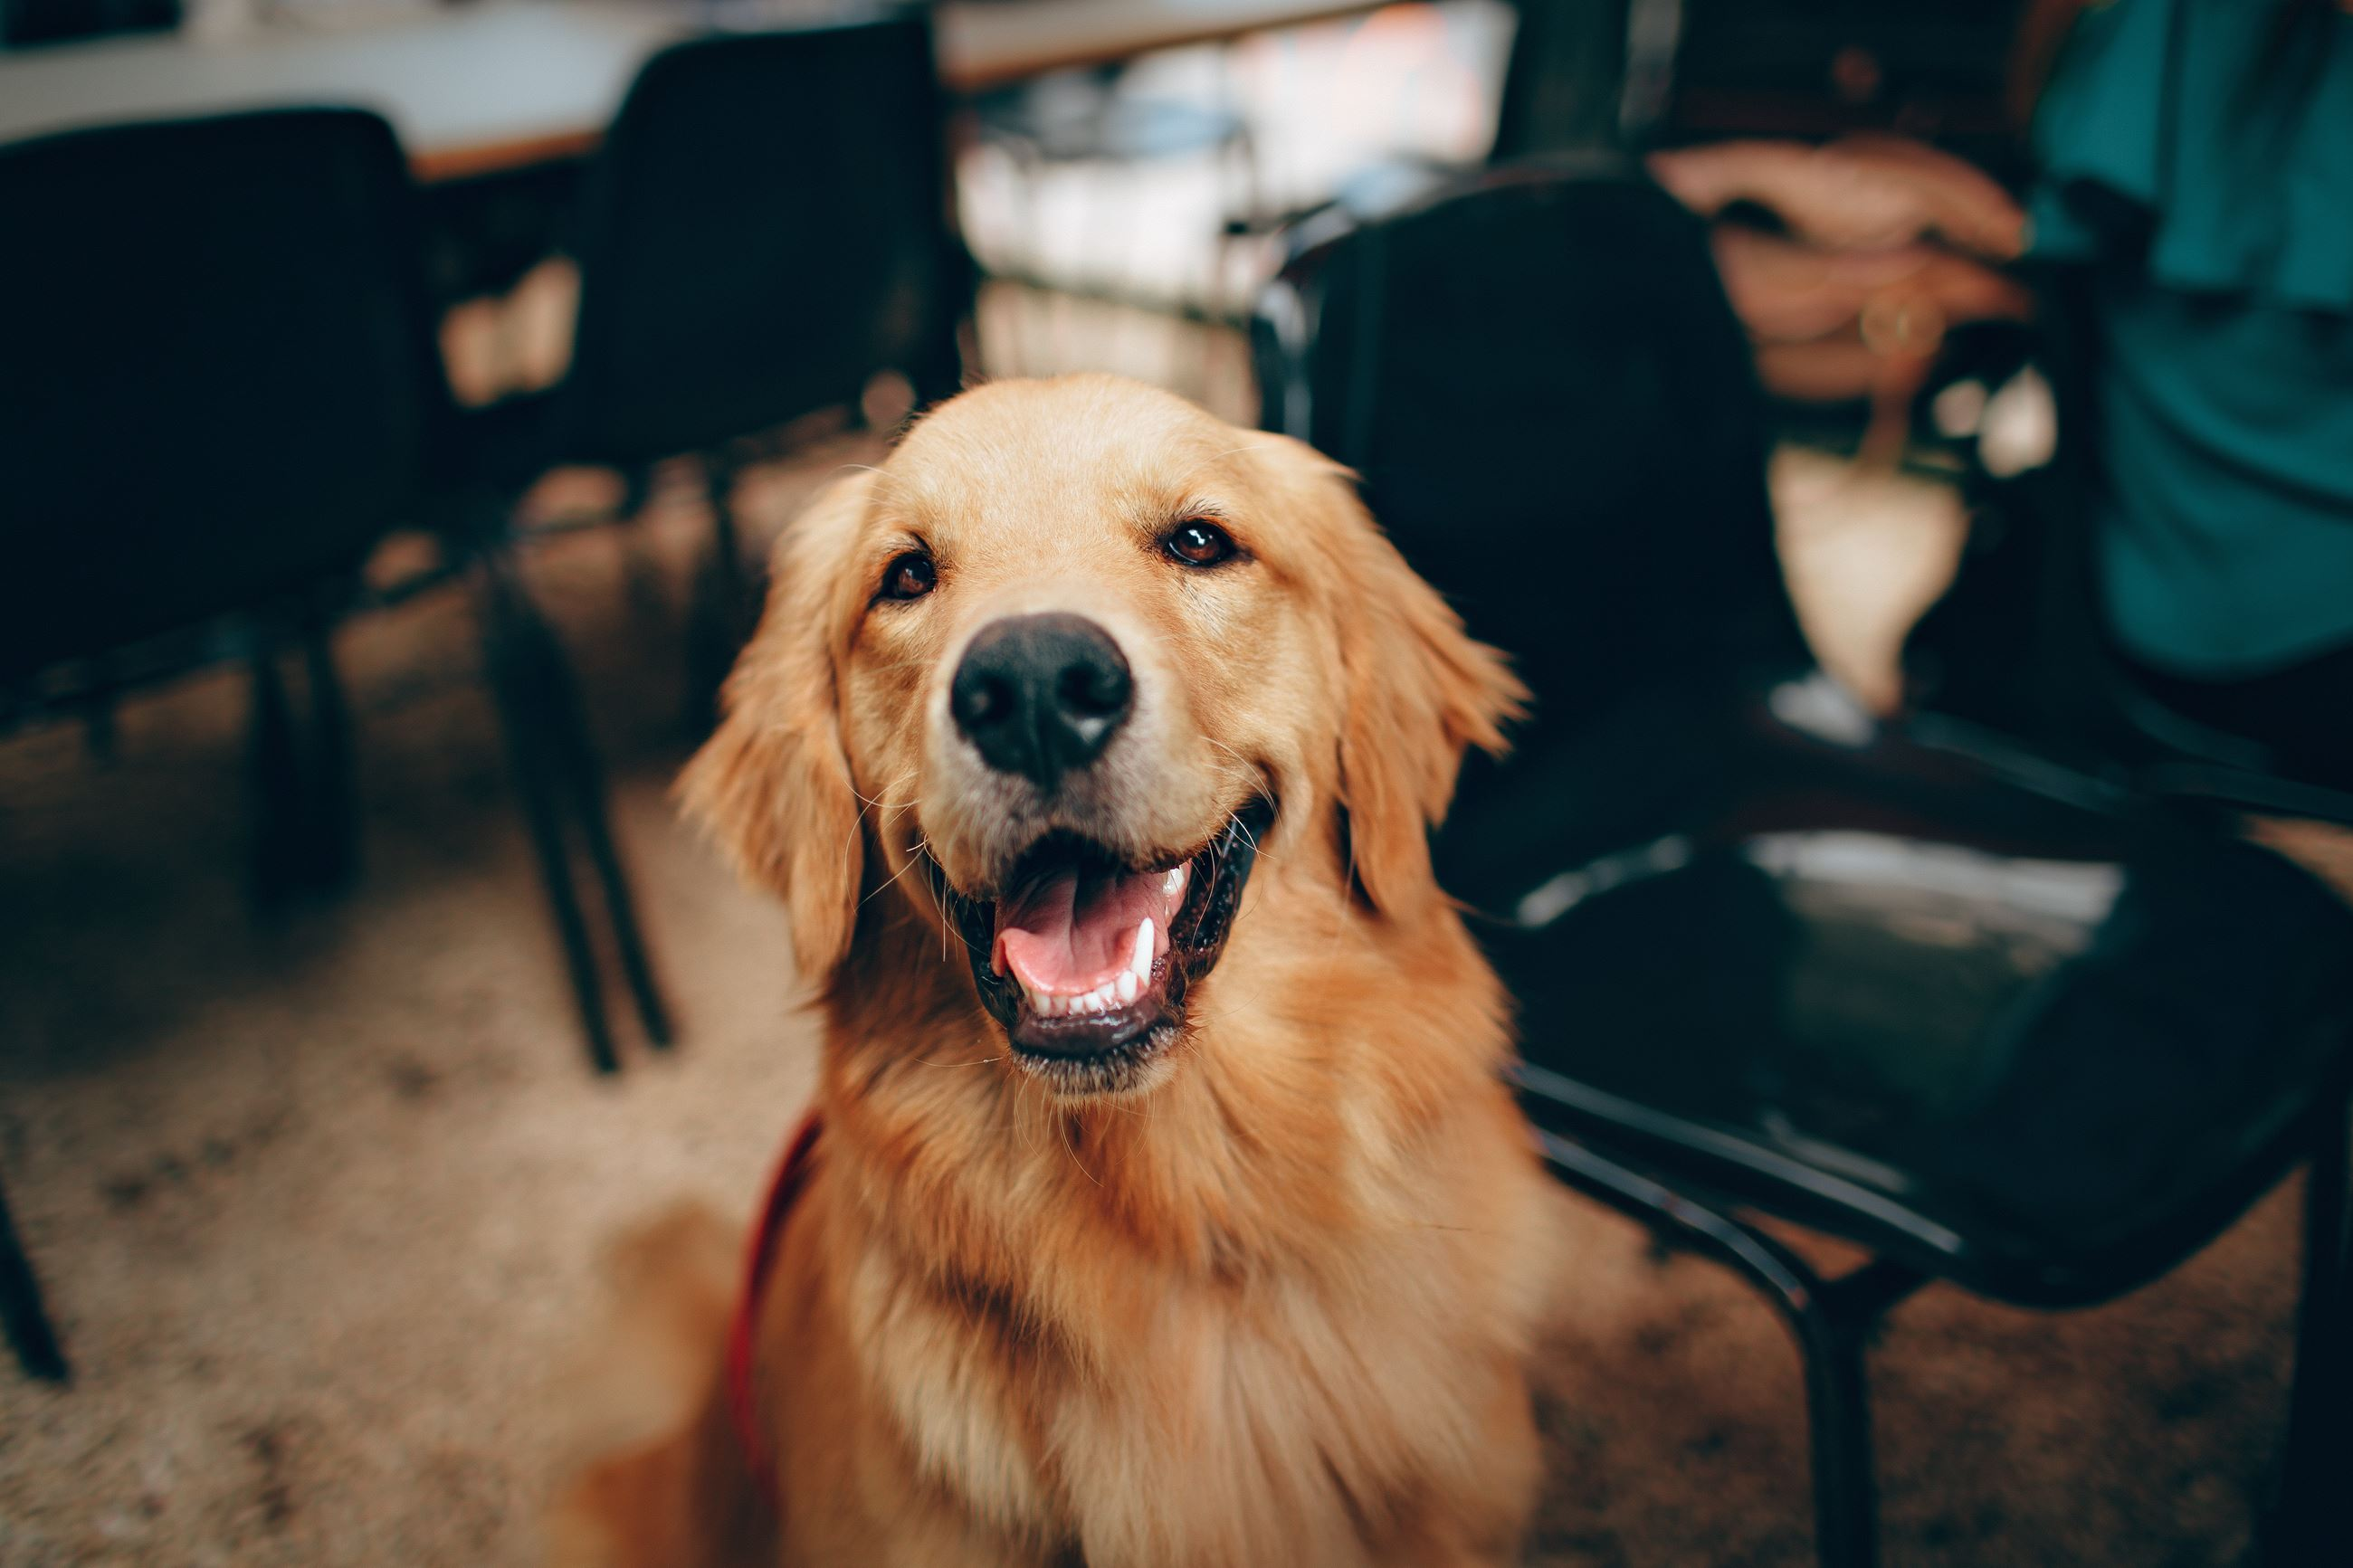 Happy Golden Retriever - Photo by Helena Lopes from Pexels